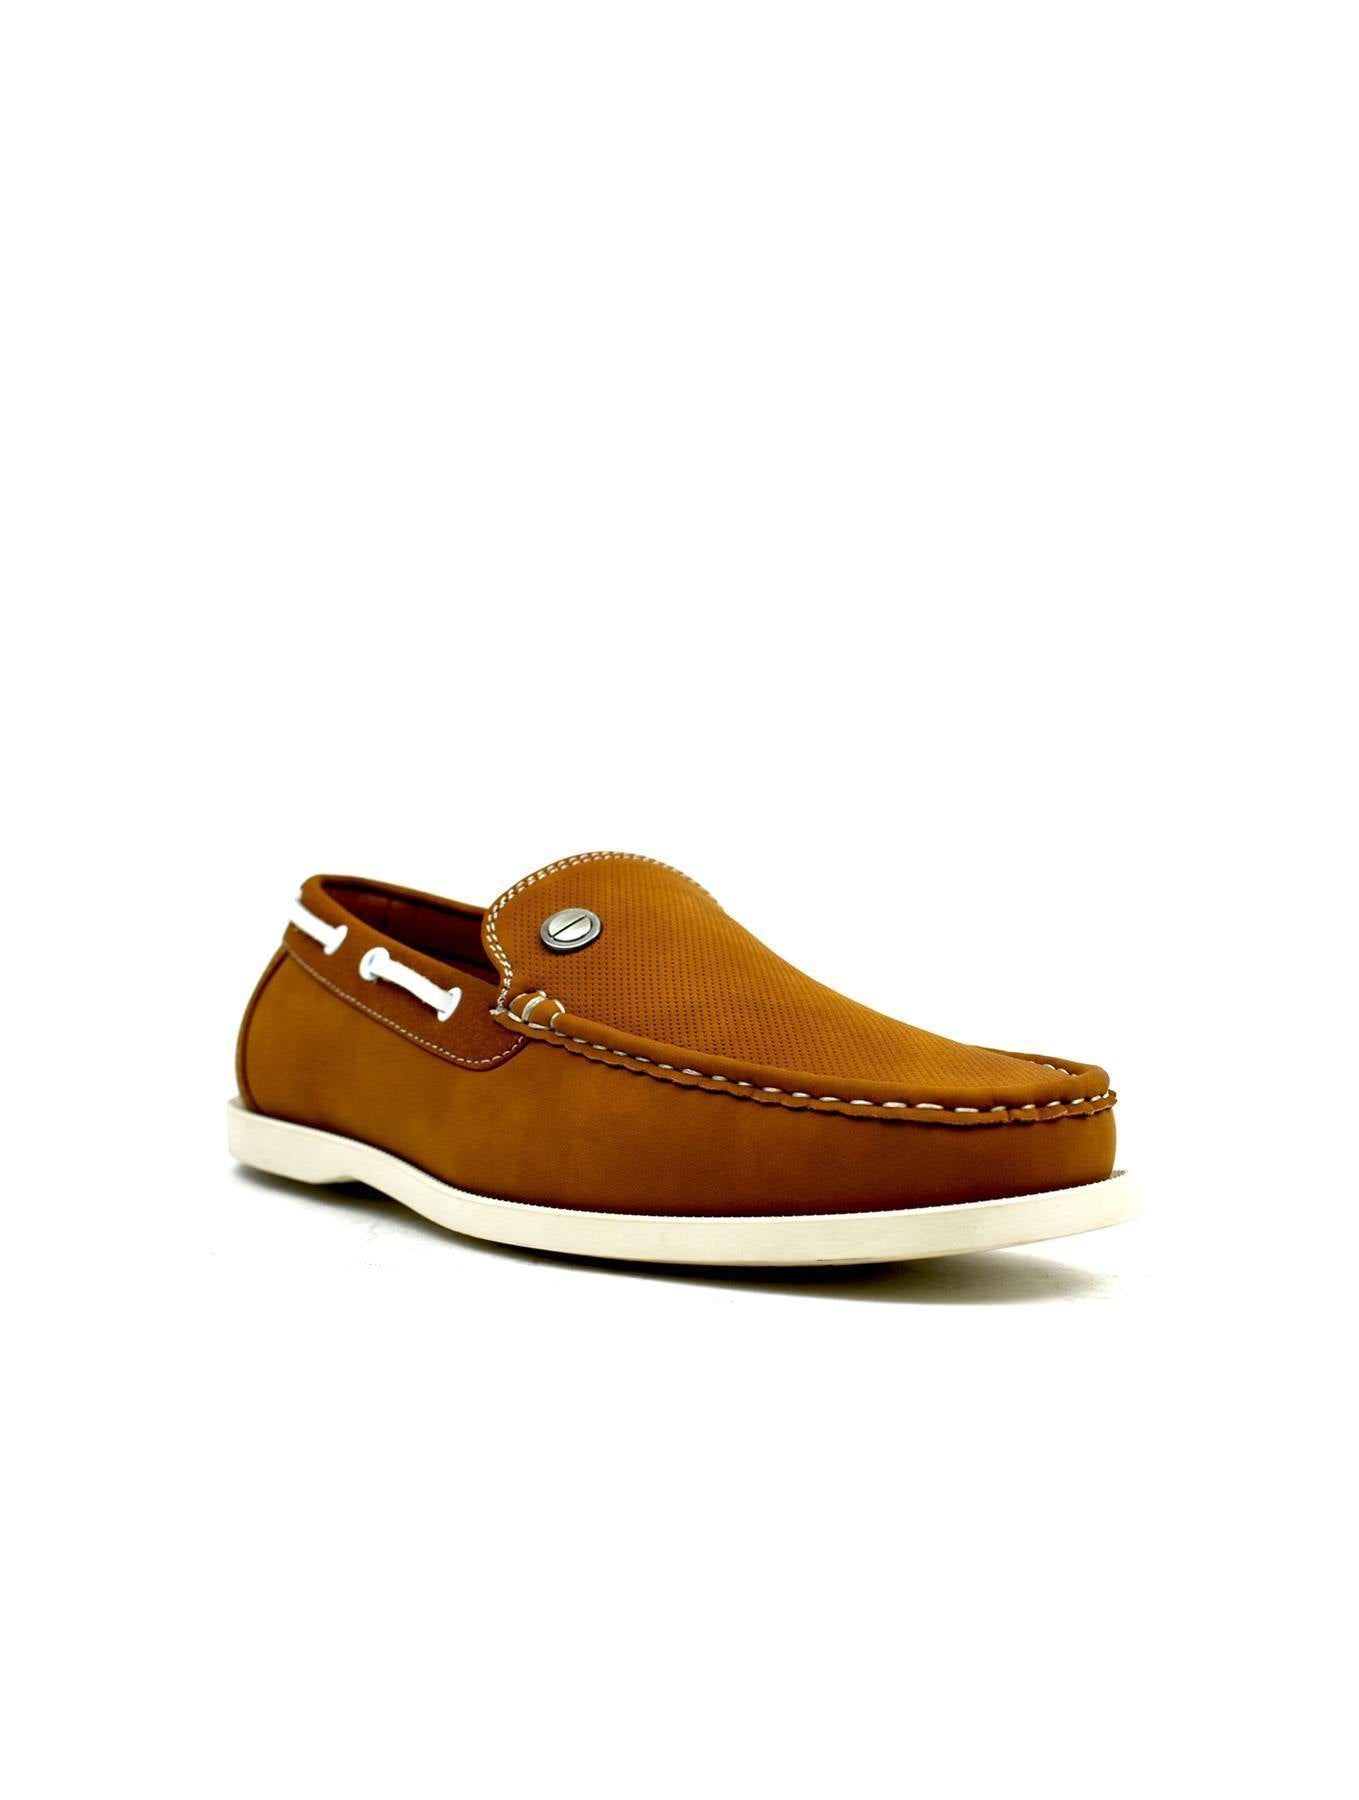 Emblem Boat Shoes Tan - DadiTude